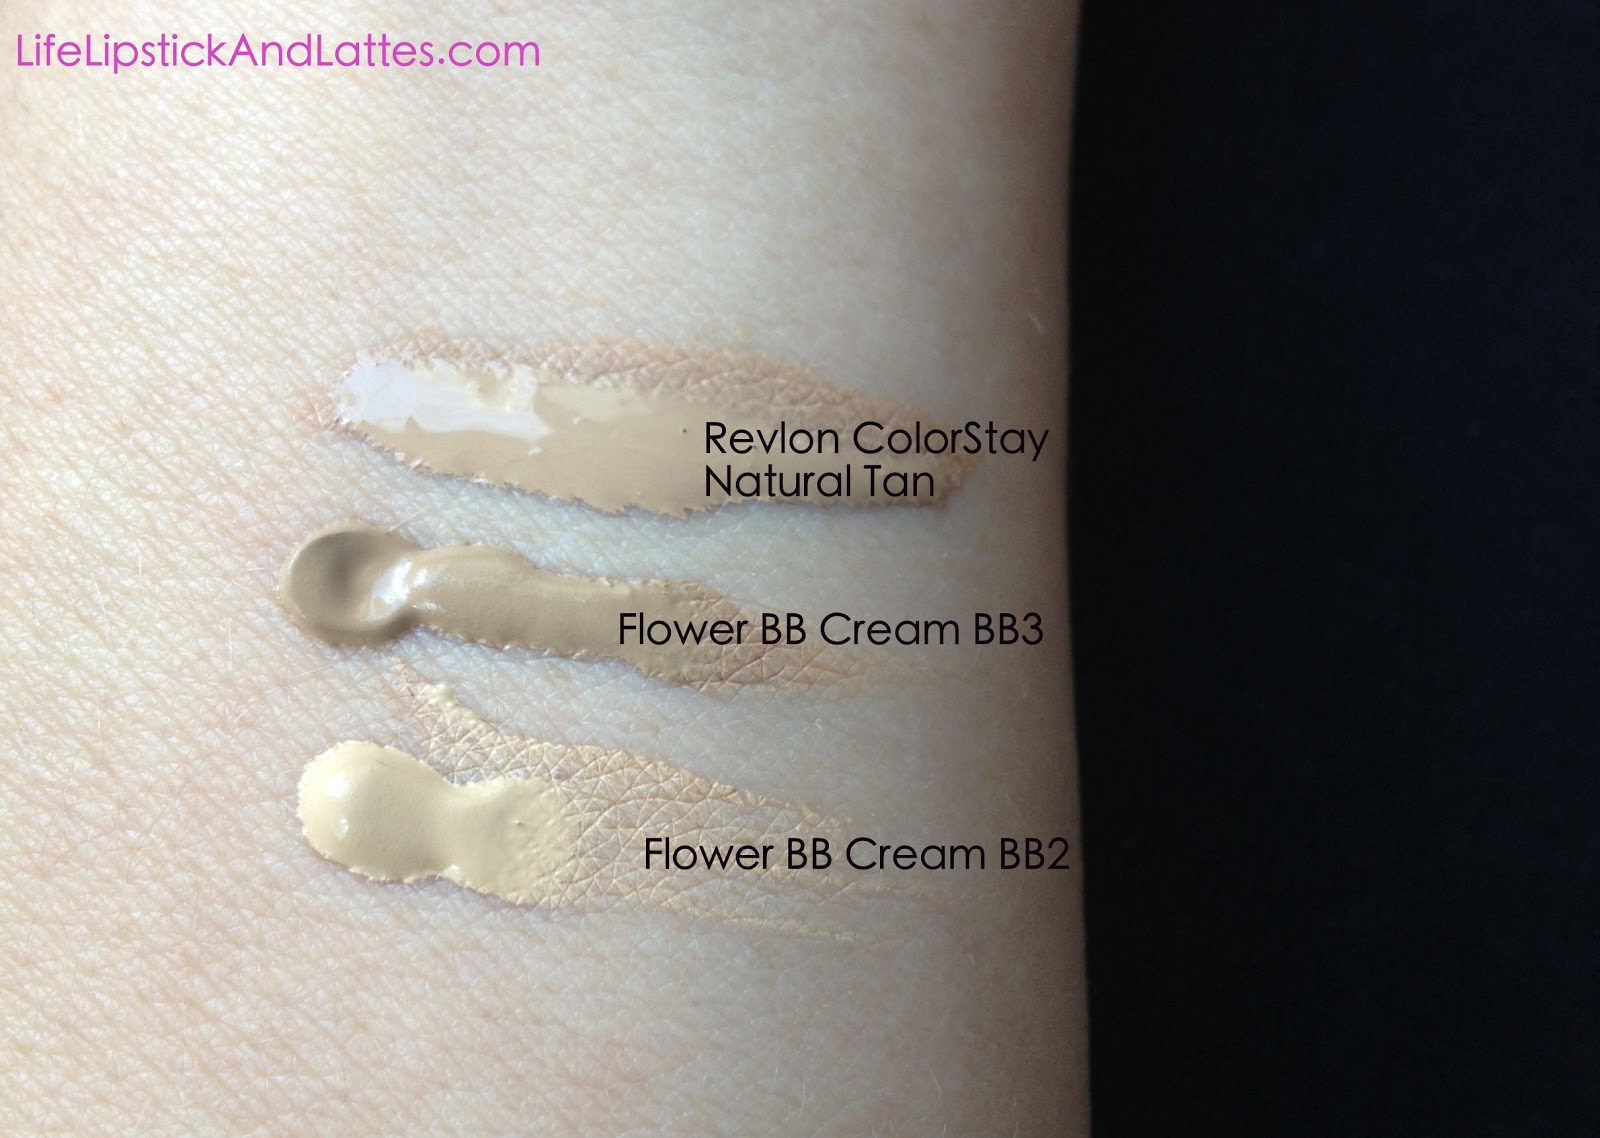 Life Lipstick and Lattes Flower BB Cream BB2 and BB3 Swatches